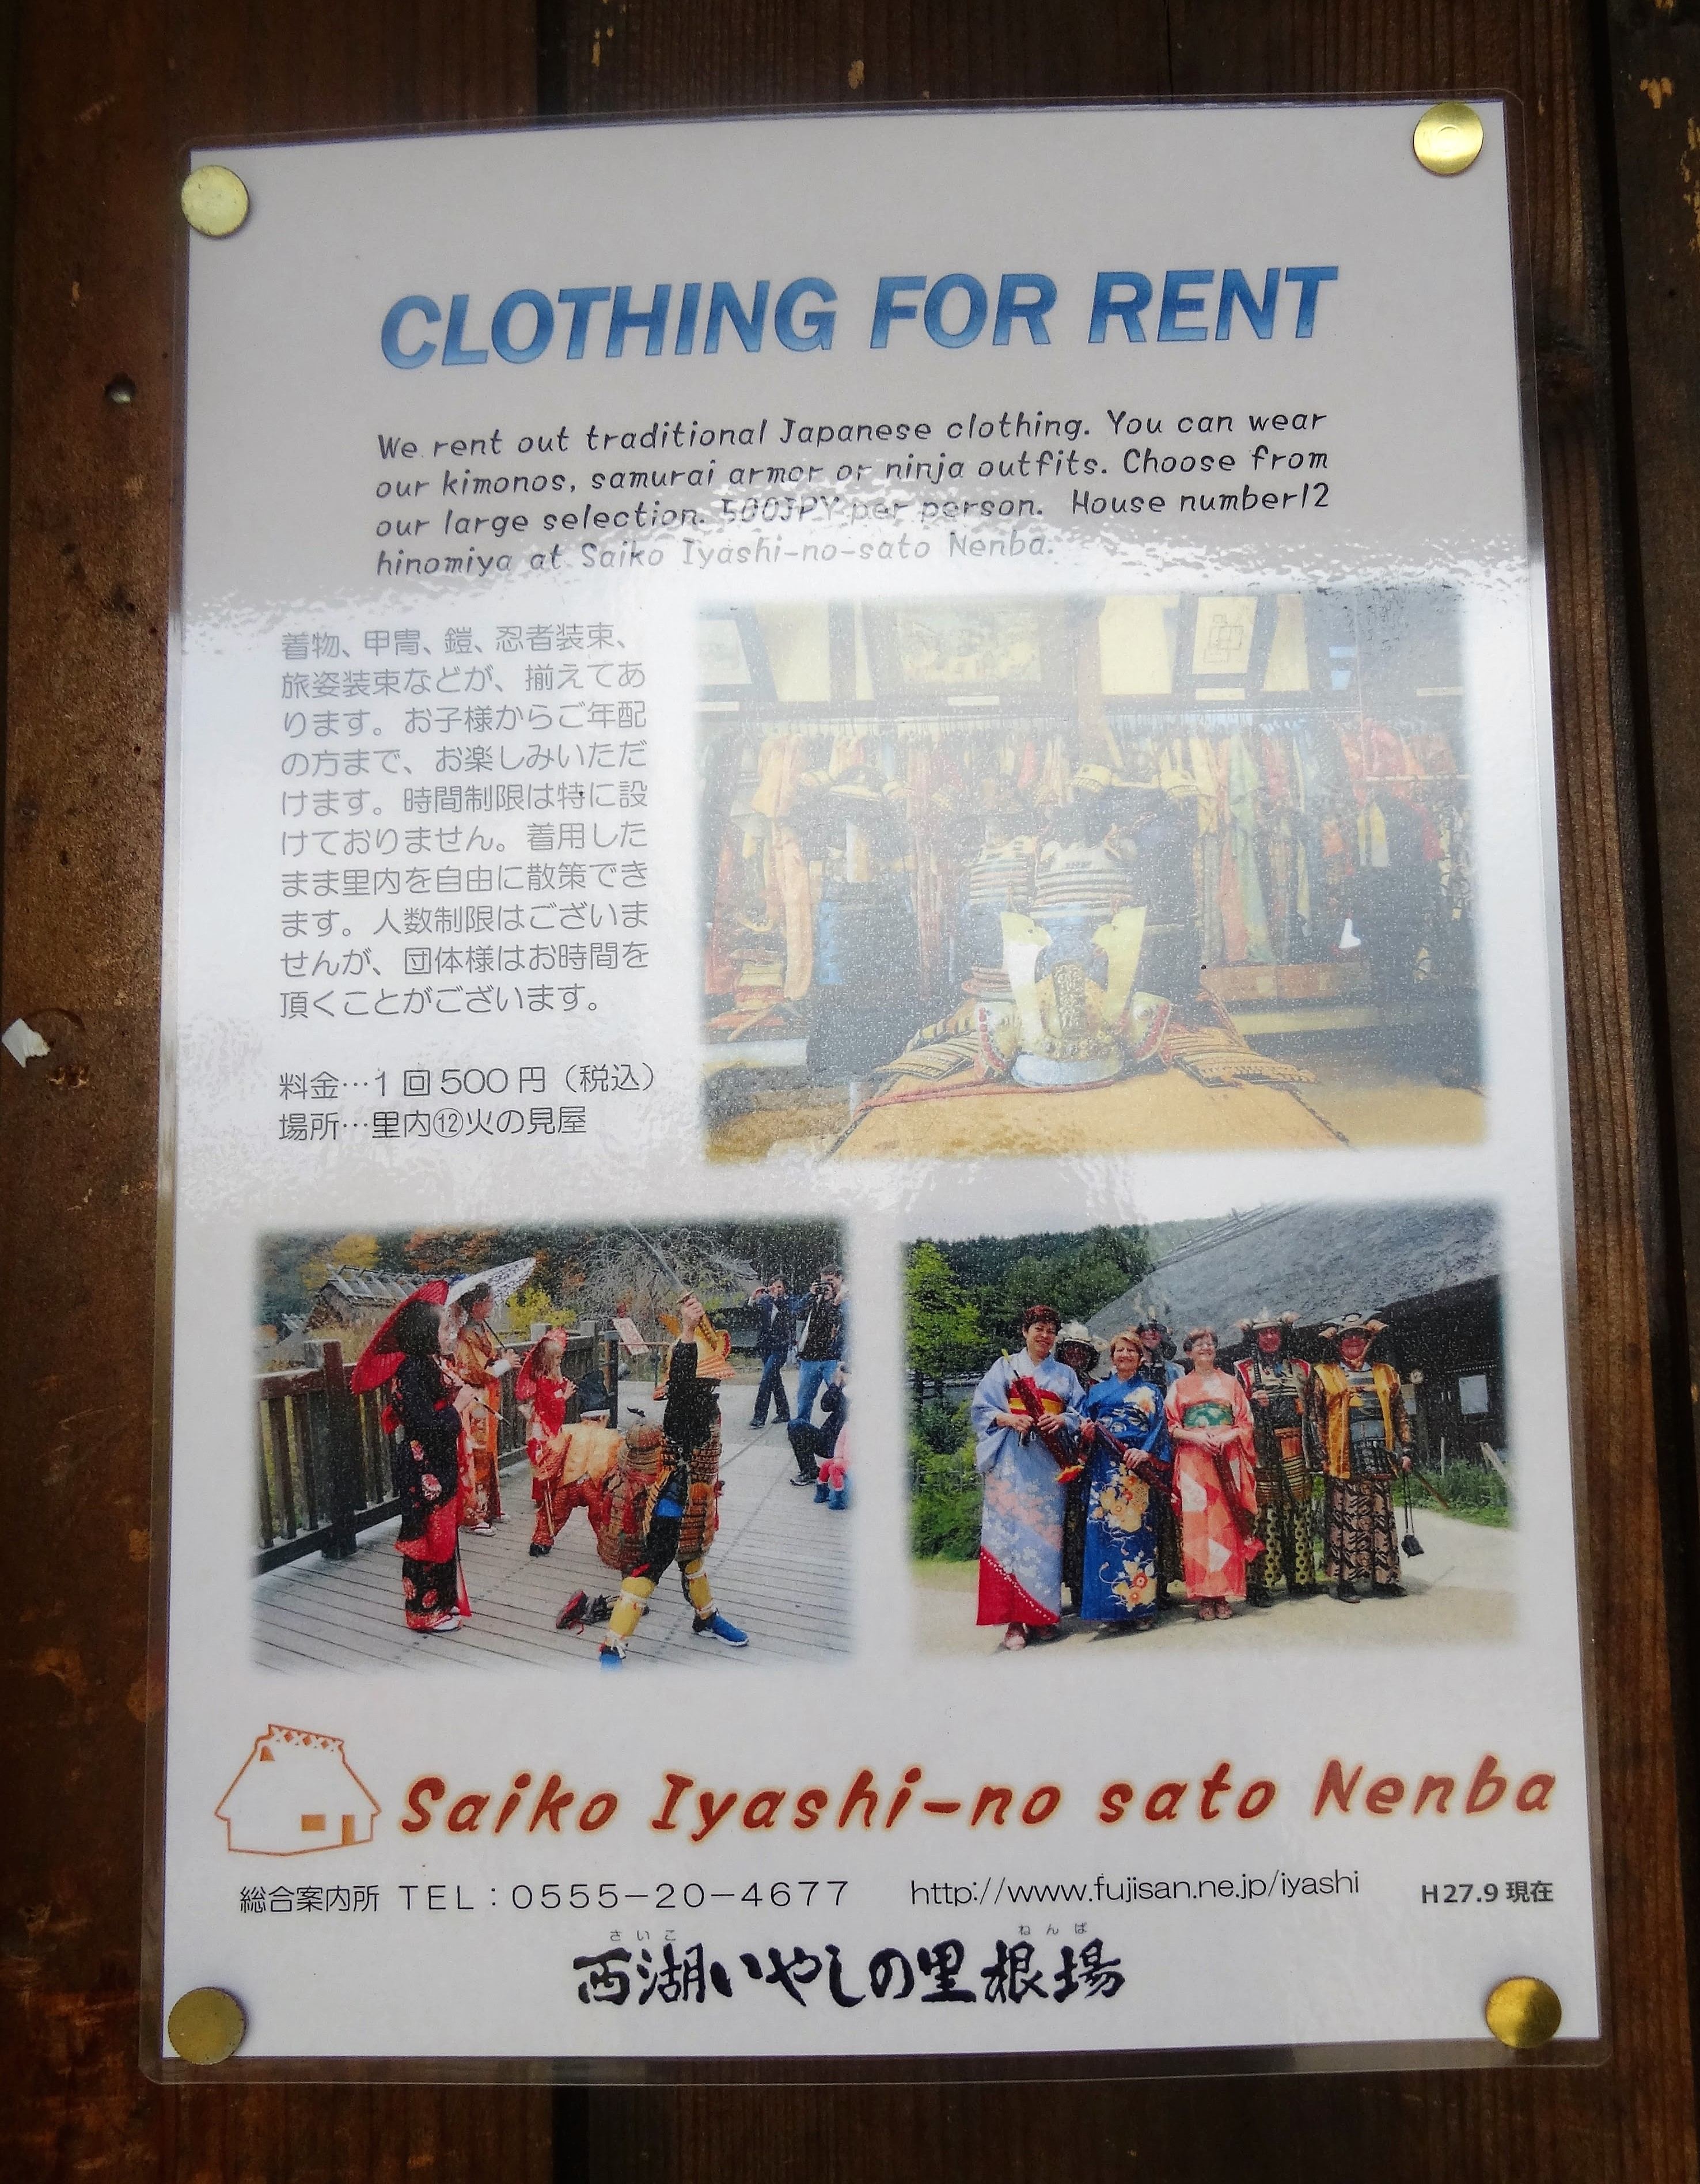 """Lamenated poster with bilingual text. The English reads: 'Clothing for rent': We rend out traditional Japanese clothing. You can wear our kimonos, samurai armor or ninja outfits. Choose from our large collection [text illegible]/ House Number12 [text illegible]"""""""